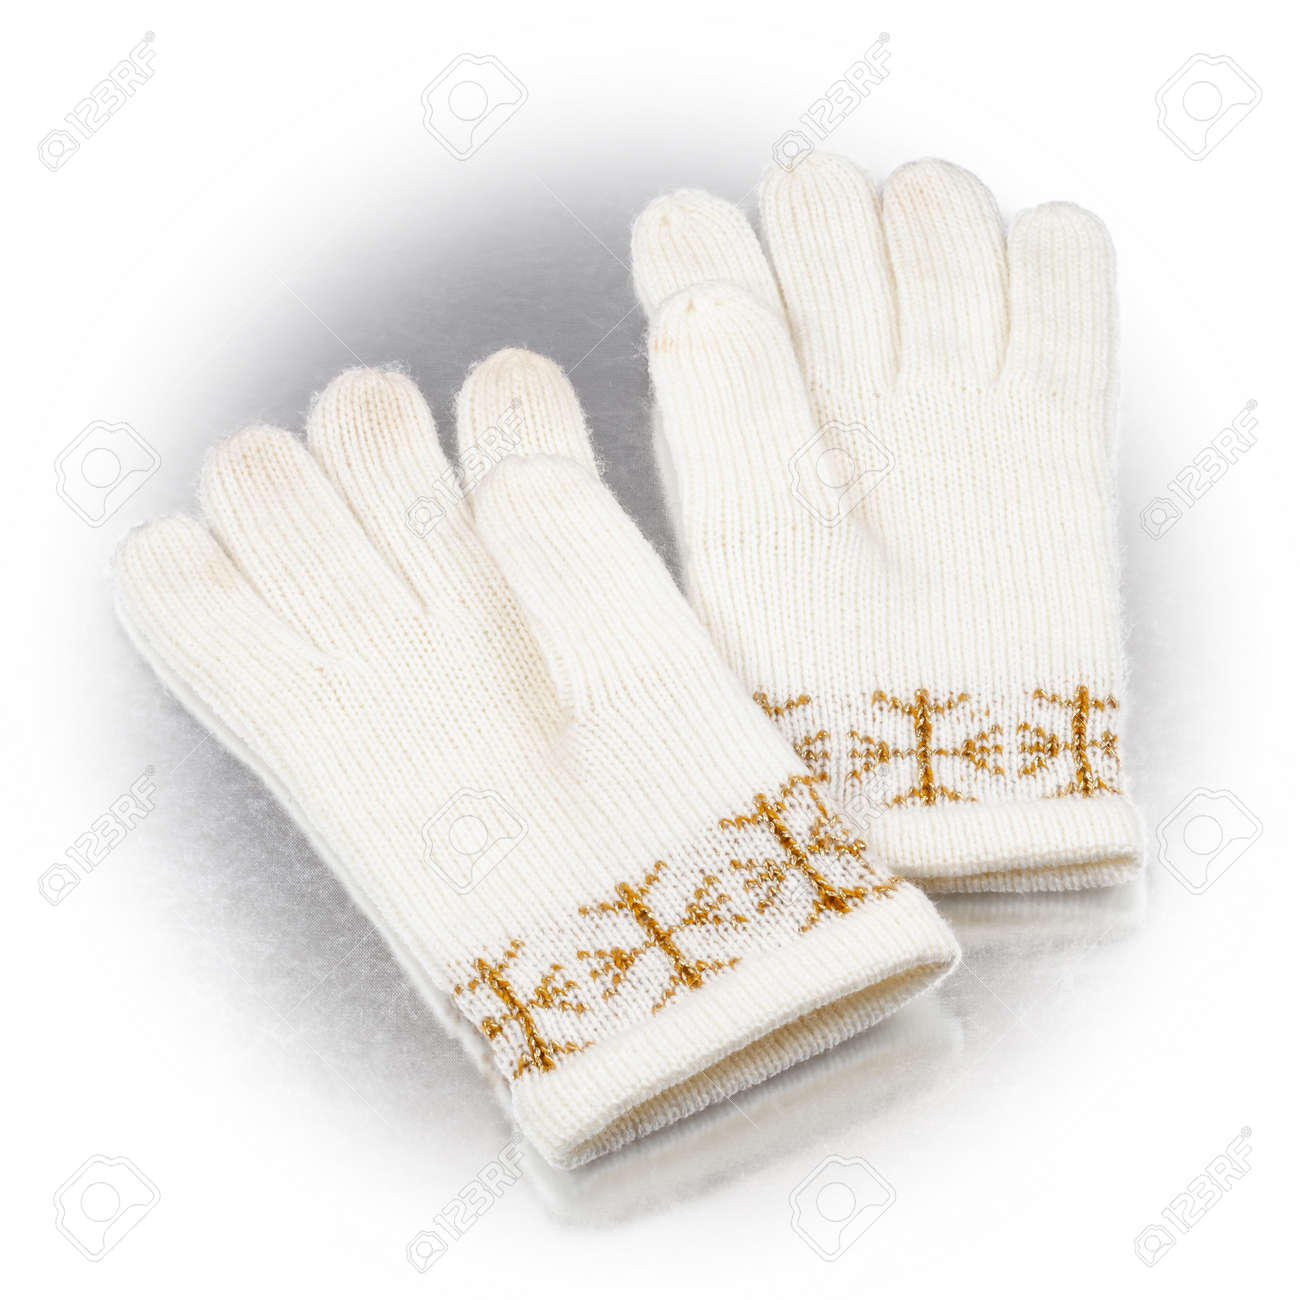 winter gloves on a white background - 172752669